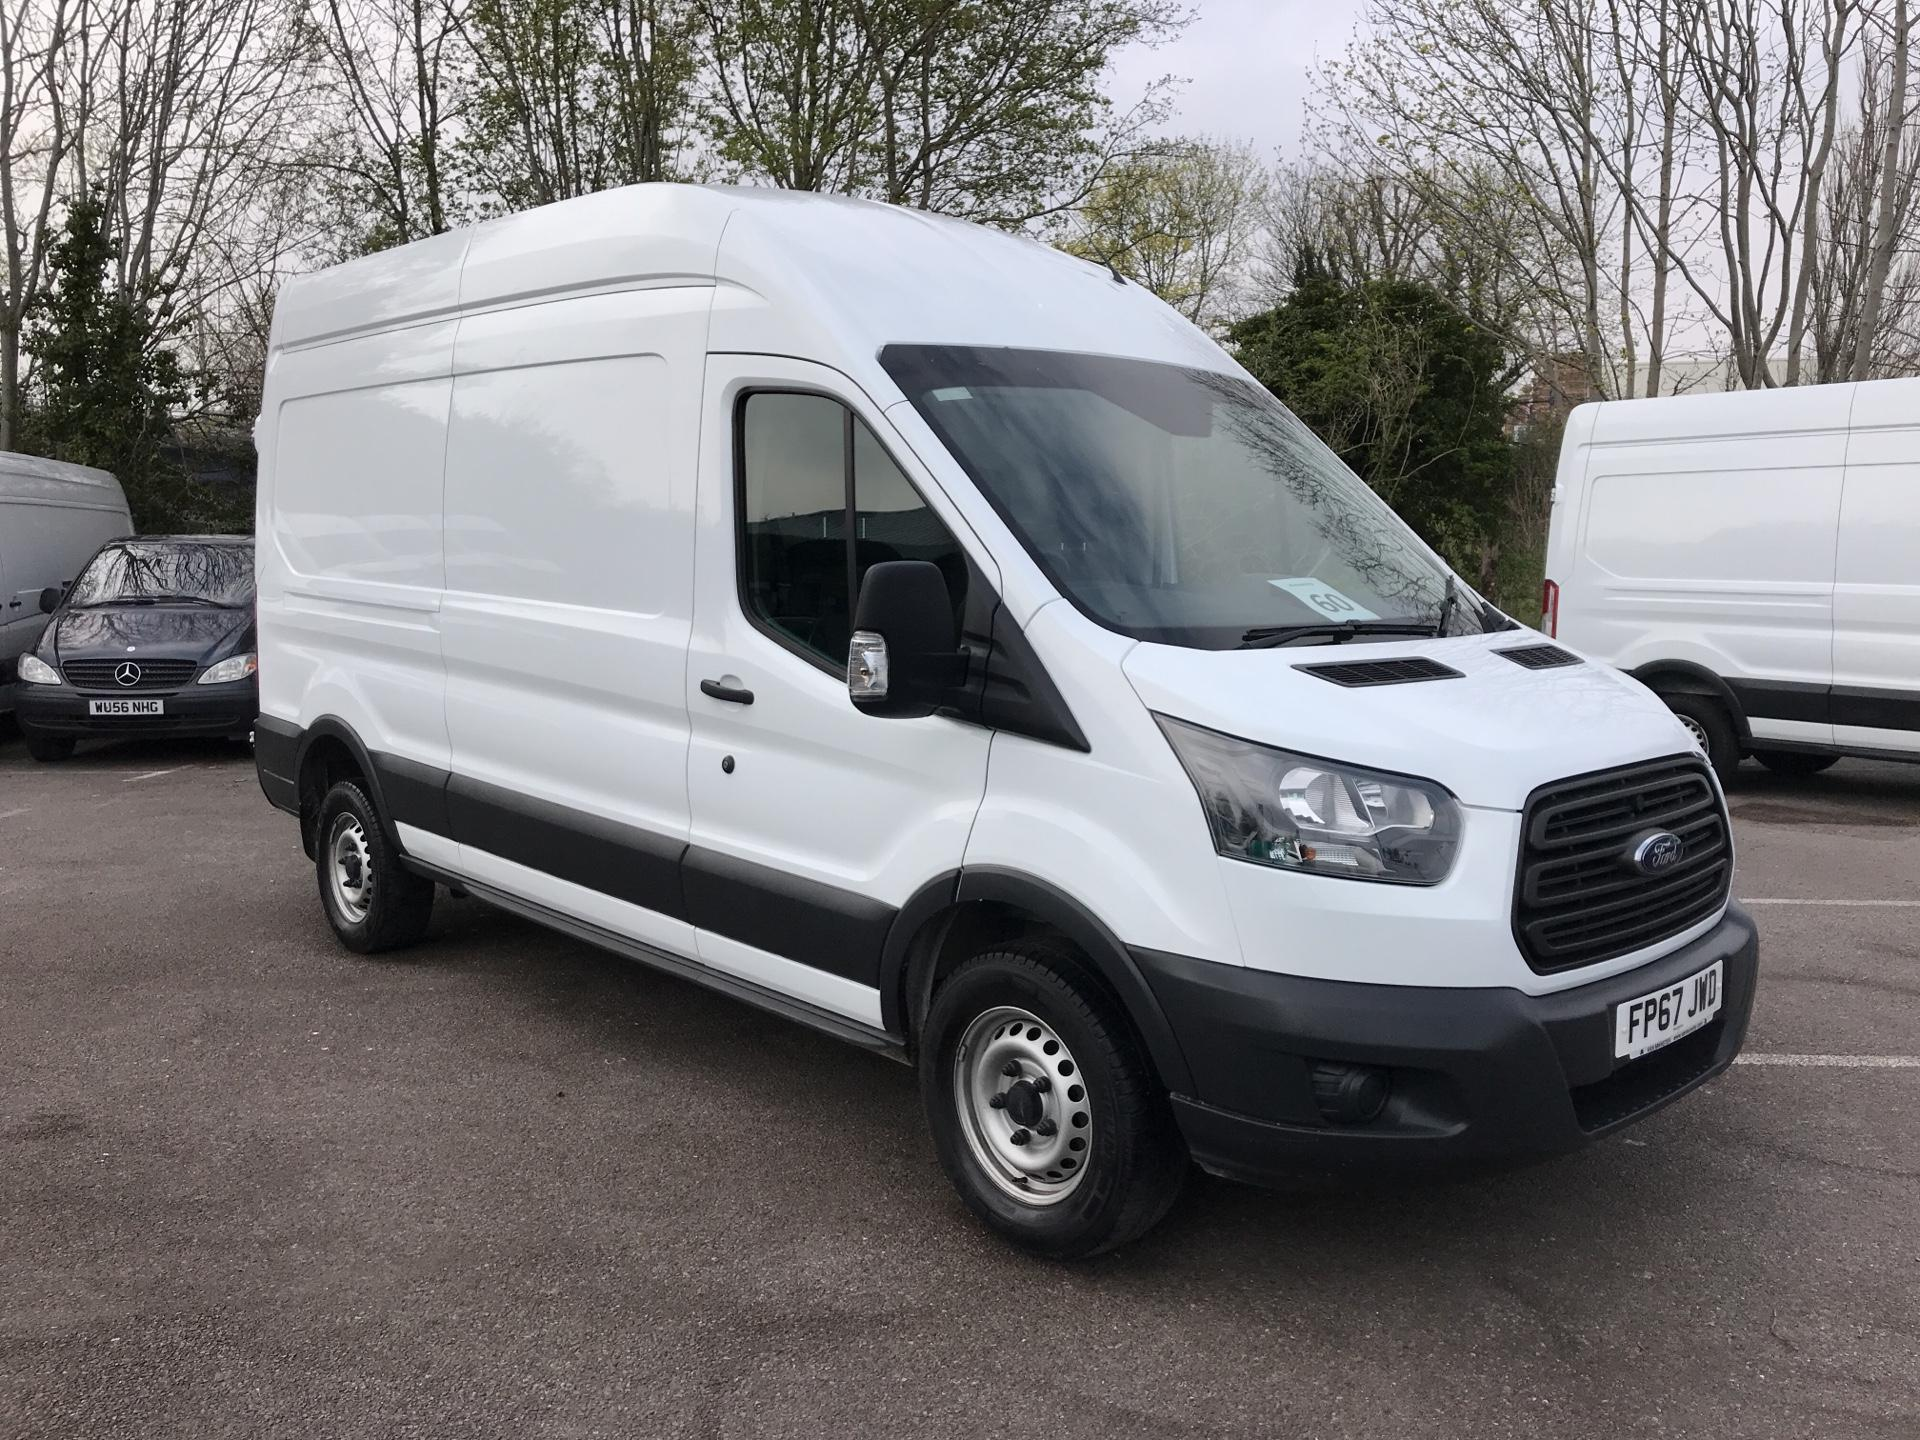 b44d875425 Used Ford Transit Vans for Sale in Frome